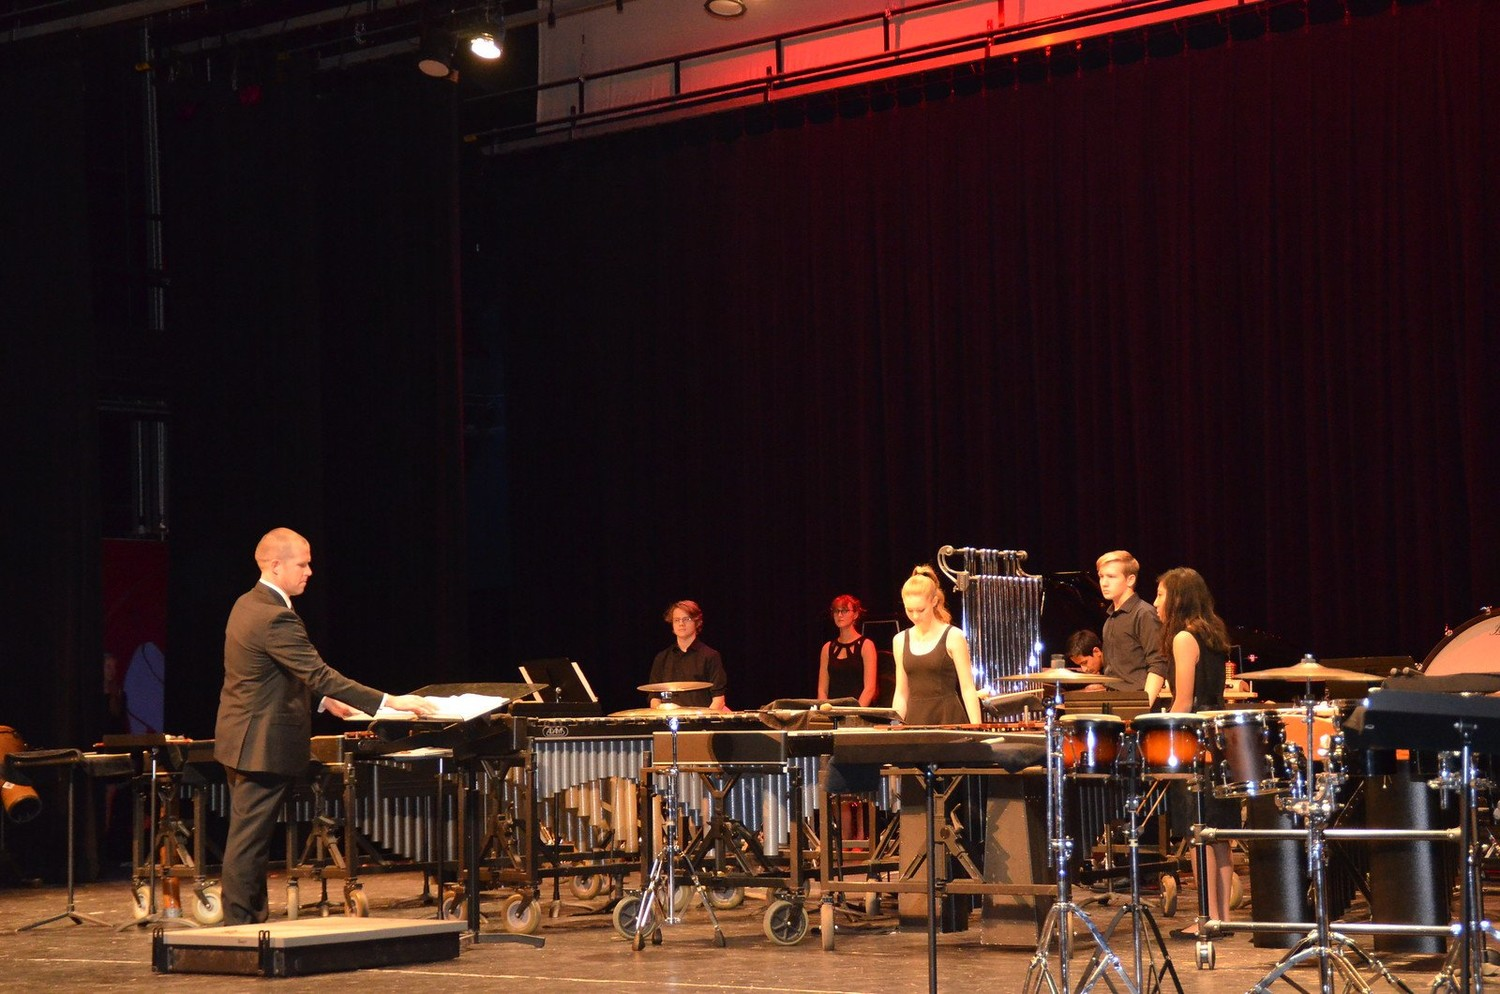 Students from the Vandegrift High School band perform a percussion ensemble at the Midwest Clinic in Chicago in Dec. 22.